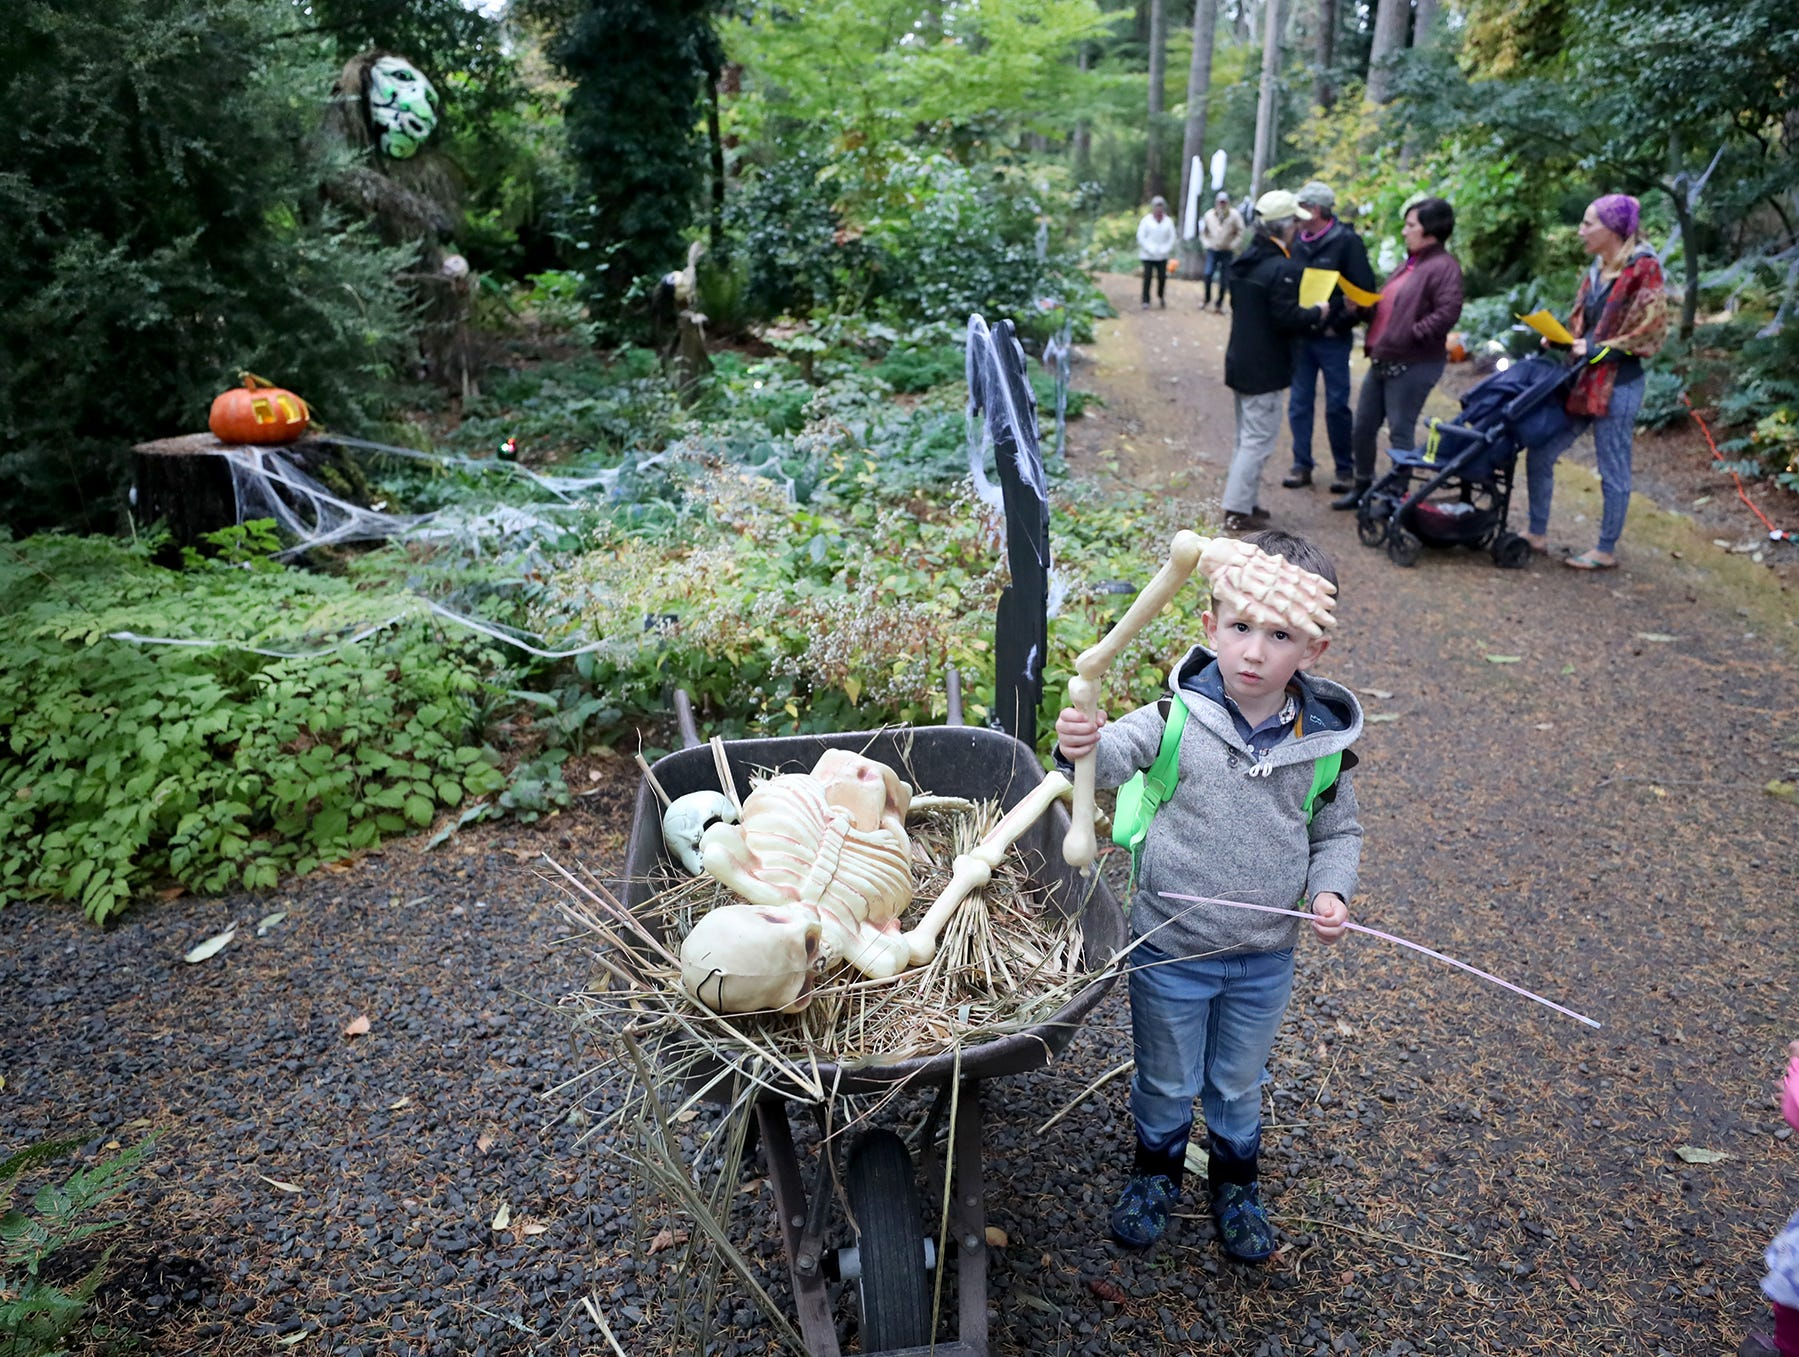 Eli Delp, 4, of Kingston lifts up an arm bone at the Haunted Heronswood 2018 in Kingston was Friday and Saturday, October,26-27. The second annual garden halloween charters tour featured some SÕKlallam folk stories.